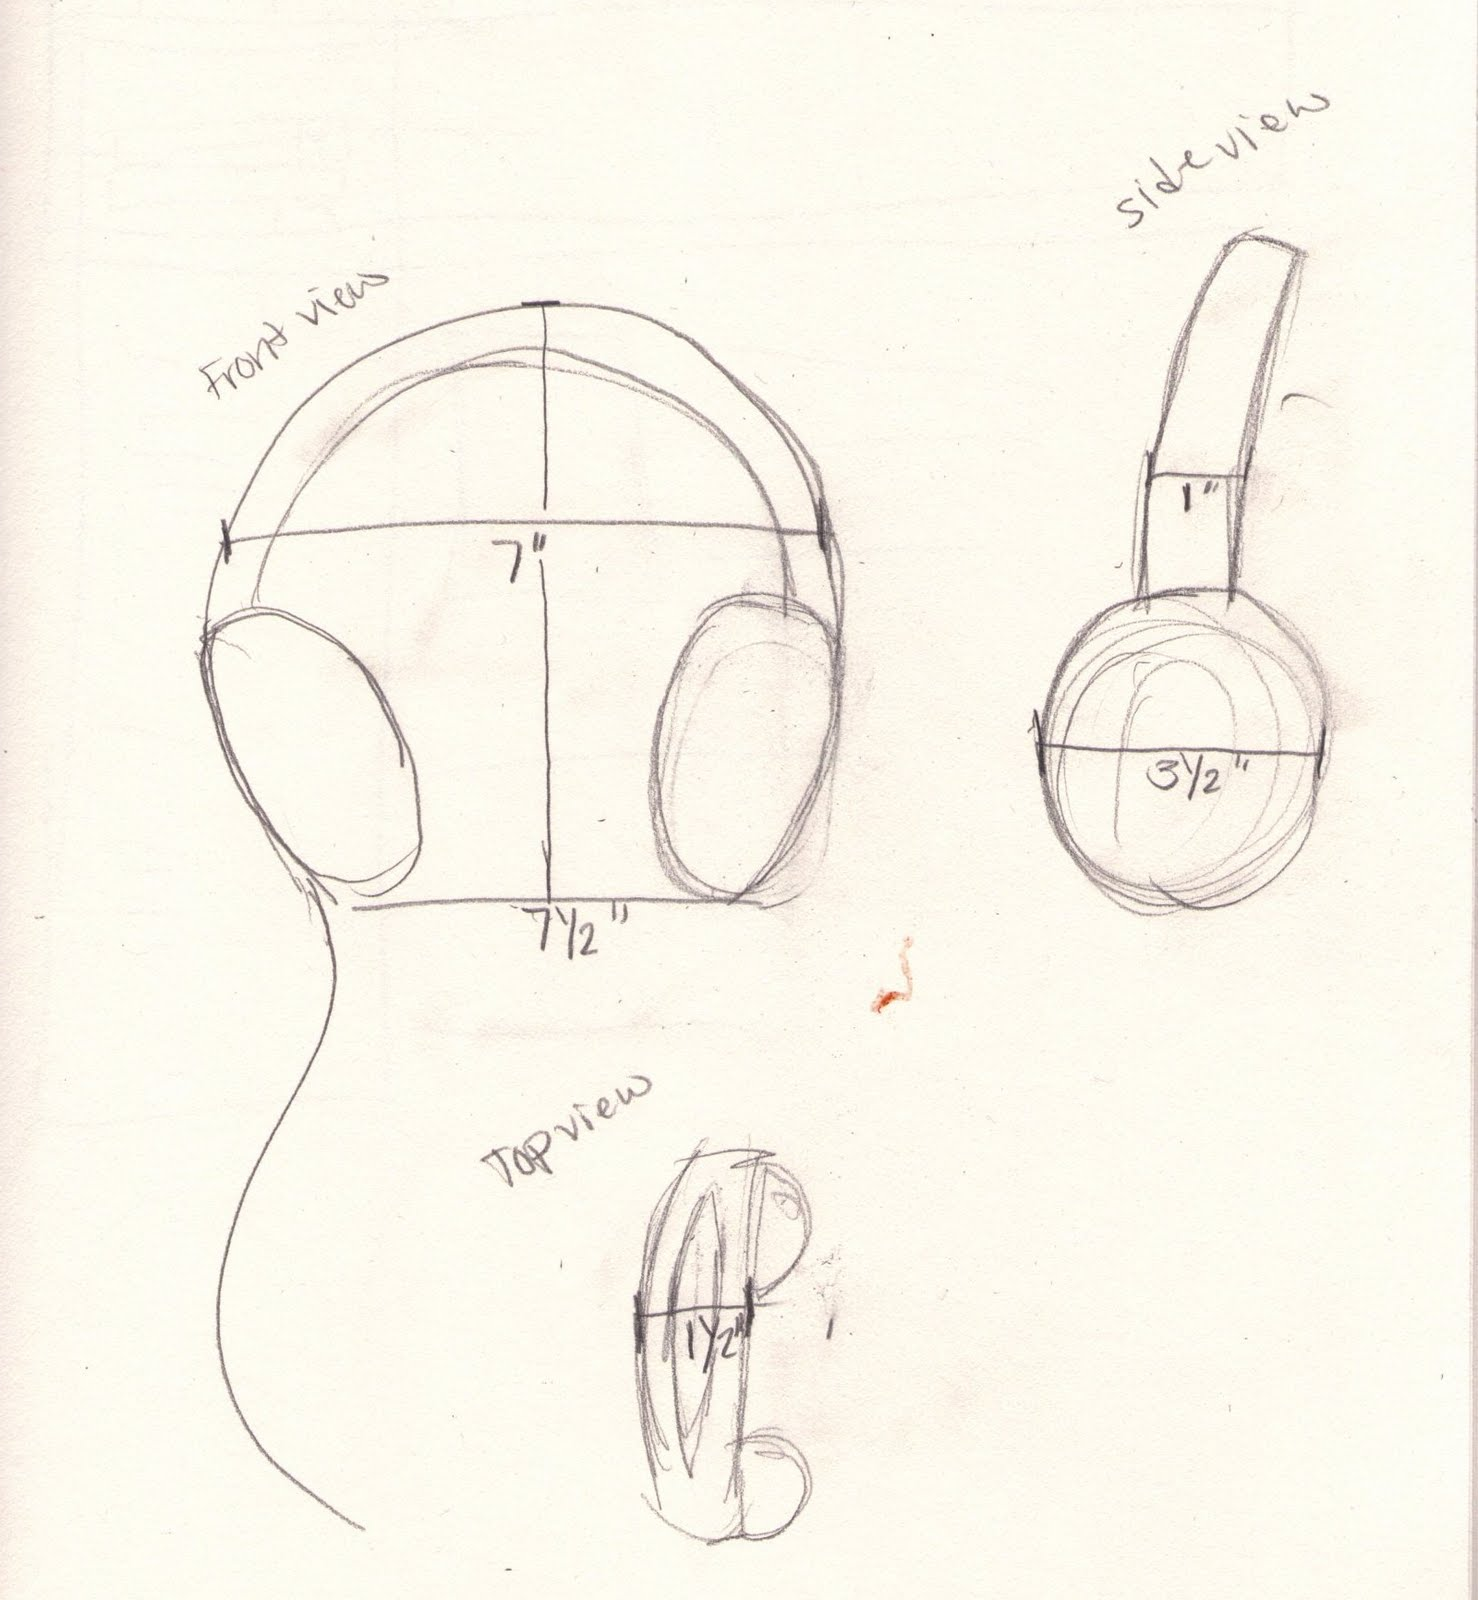 DECIBEL MEDIA: Headphone measurements